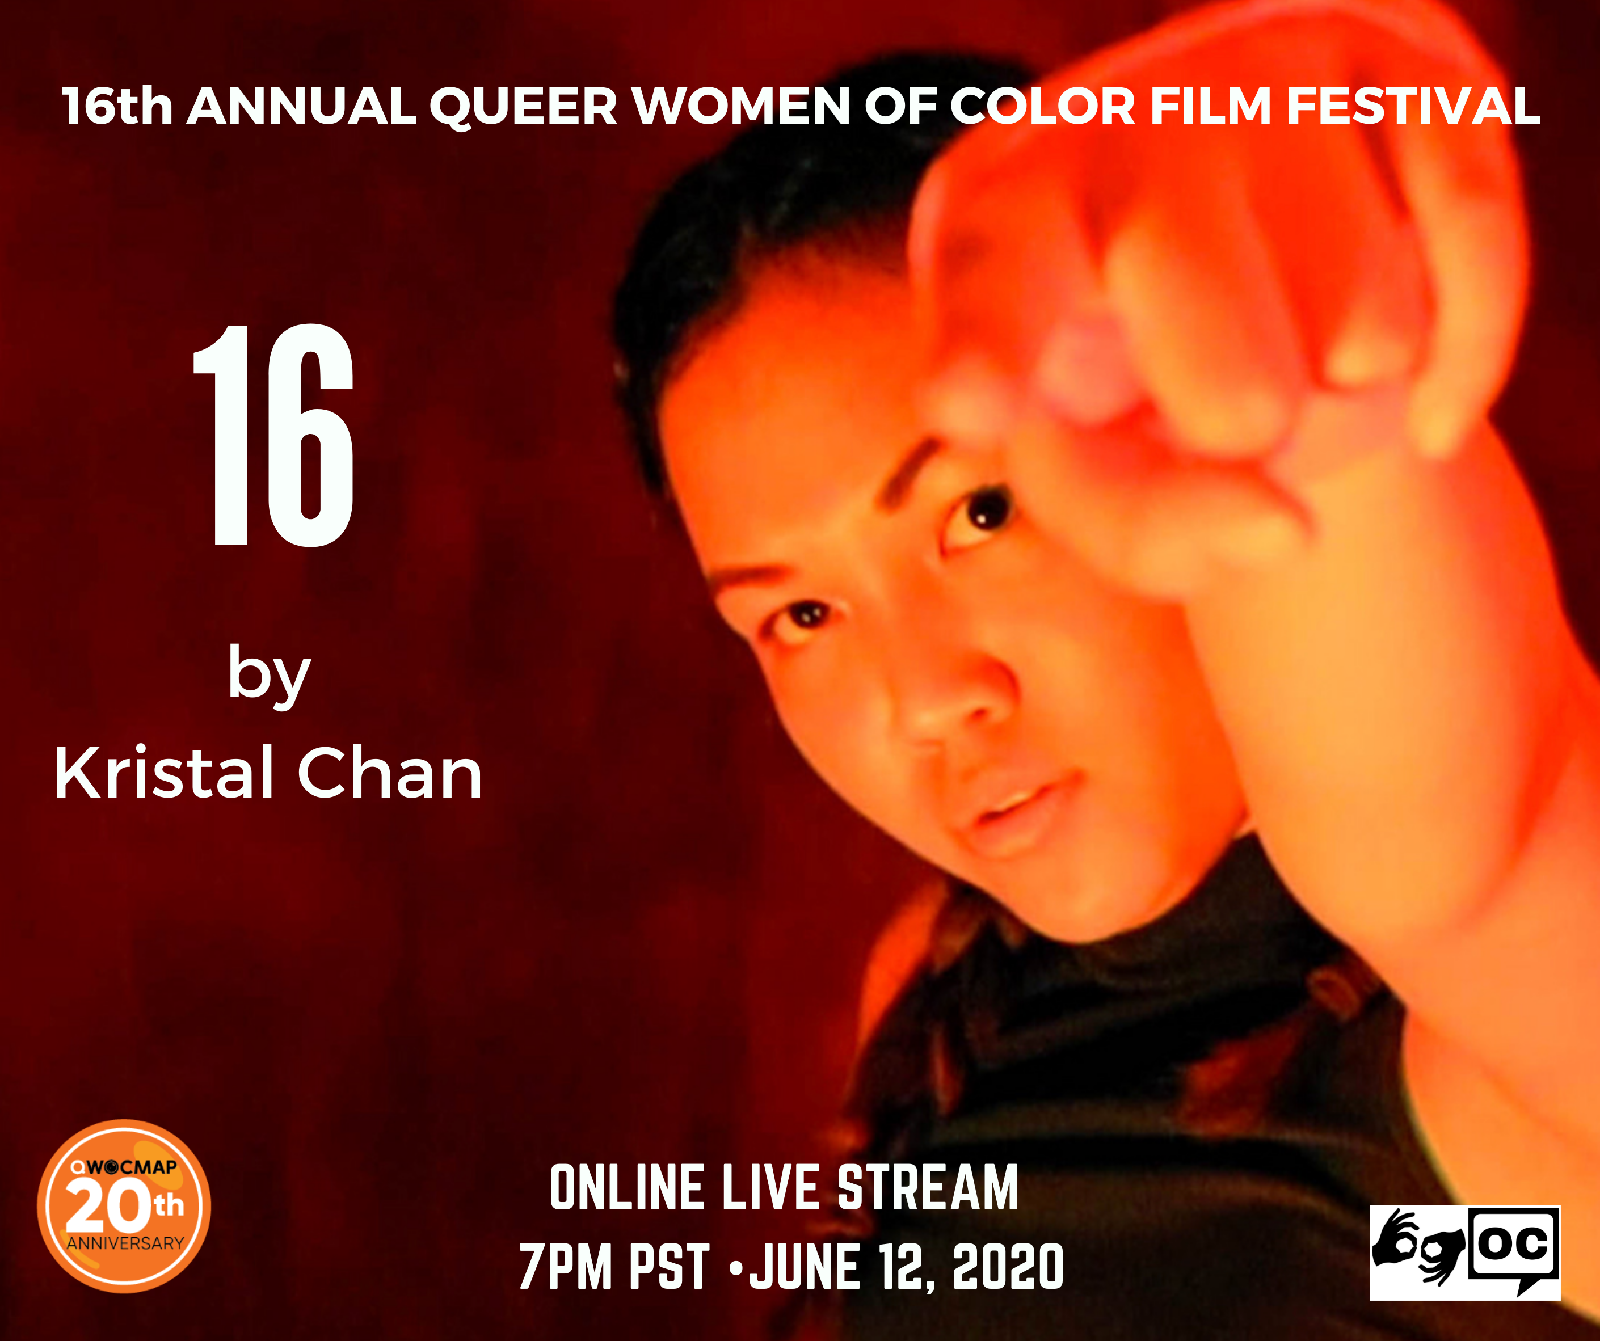 A queer half Chinese, half Malay woman with medium brown skin  looks fiercely at the camera, one fist raised in front of her face. The top of the image reads 16th Annual Queer Women of Color Film Festival.Text below reads 16 by Kristal Chan. The QWOCMAP logo is on the bottom left, the ASL and open captions logo are on the bottom right. Text reads ONLINE LIVE STREAM 7PM PST JUNE 12, 2020.